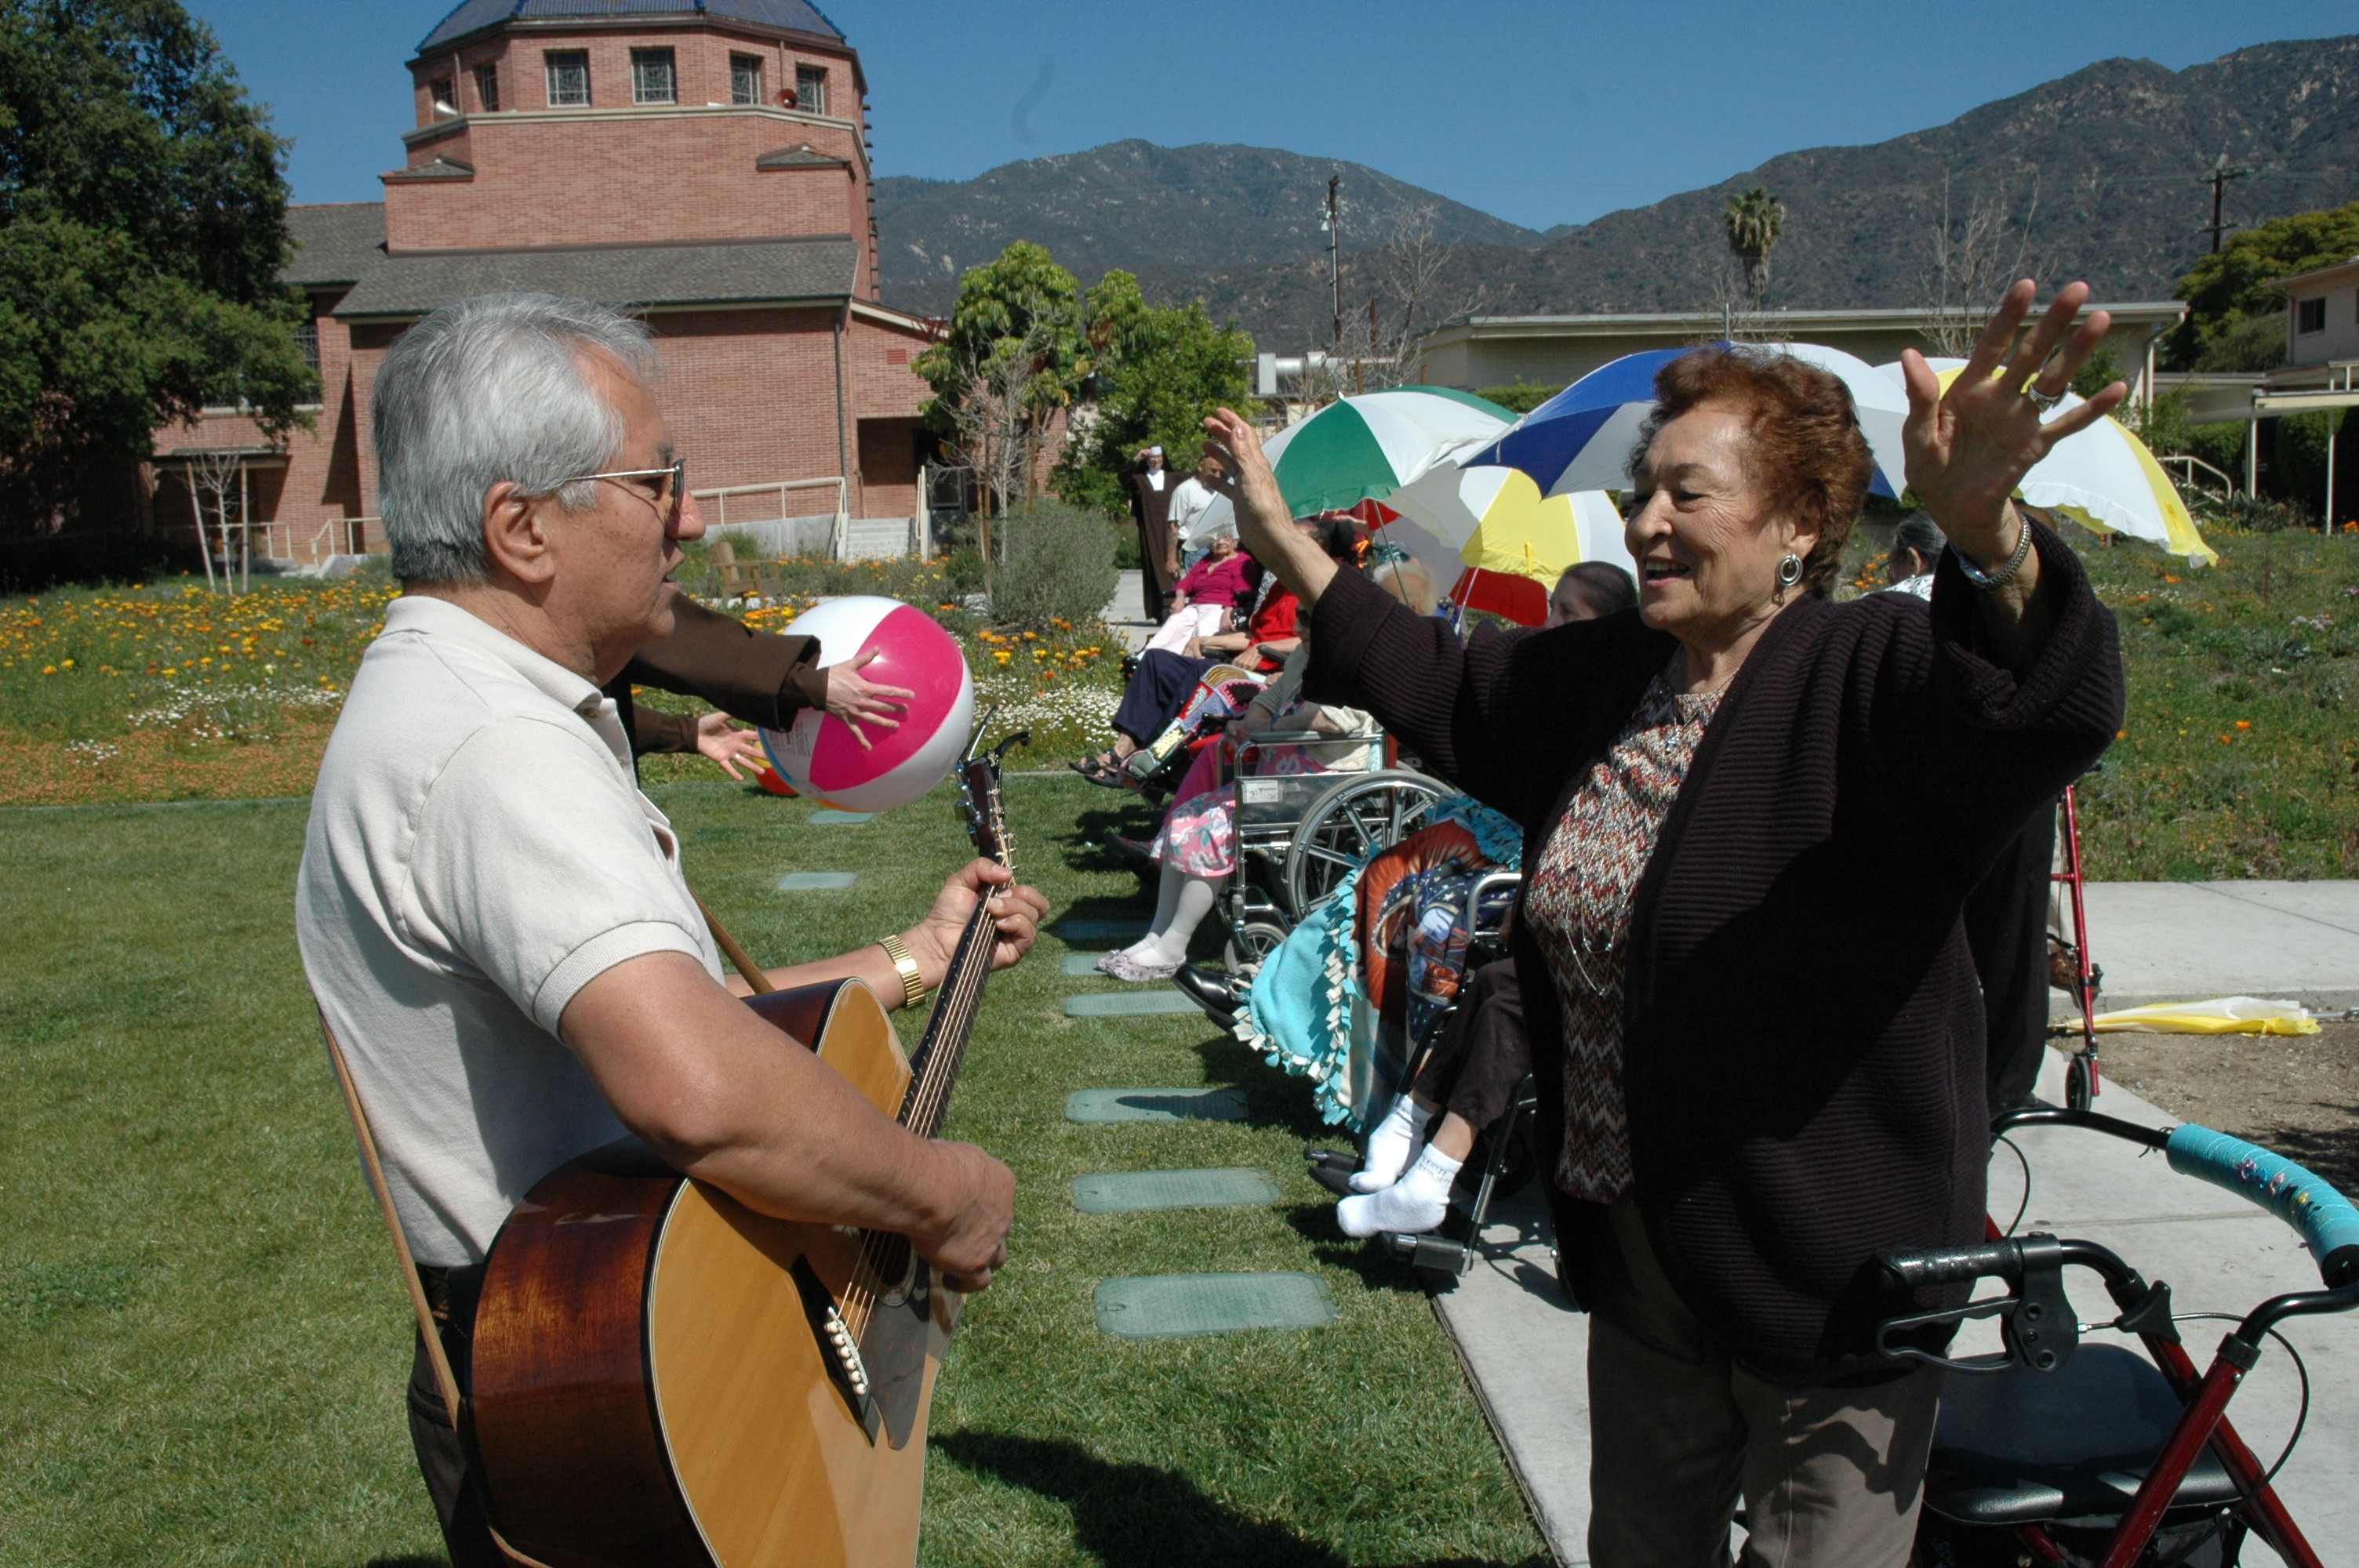 Residents Listening to Music